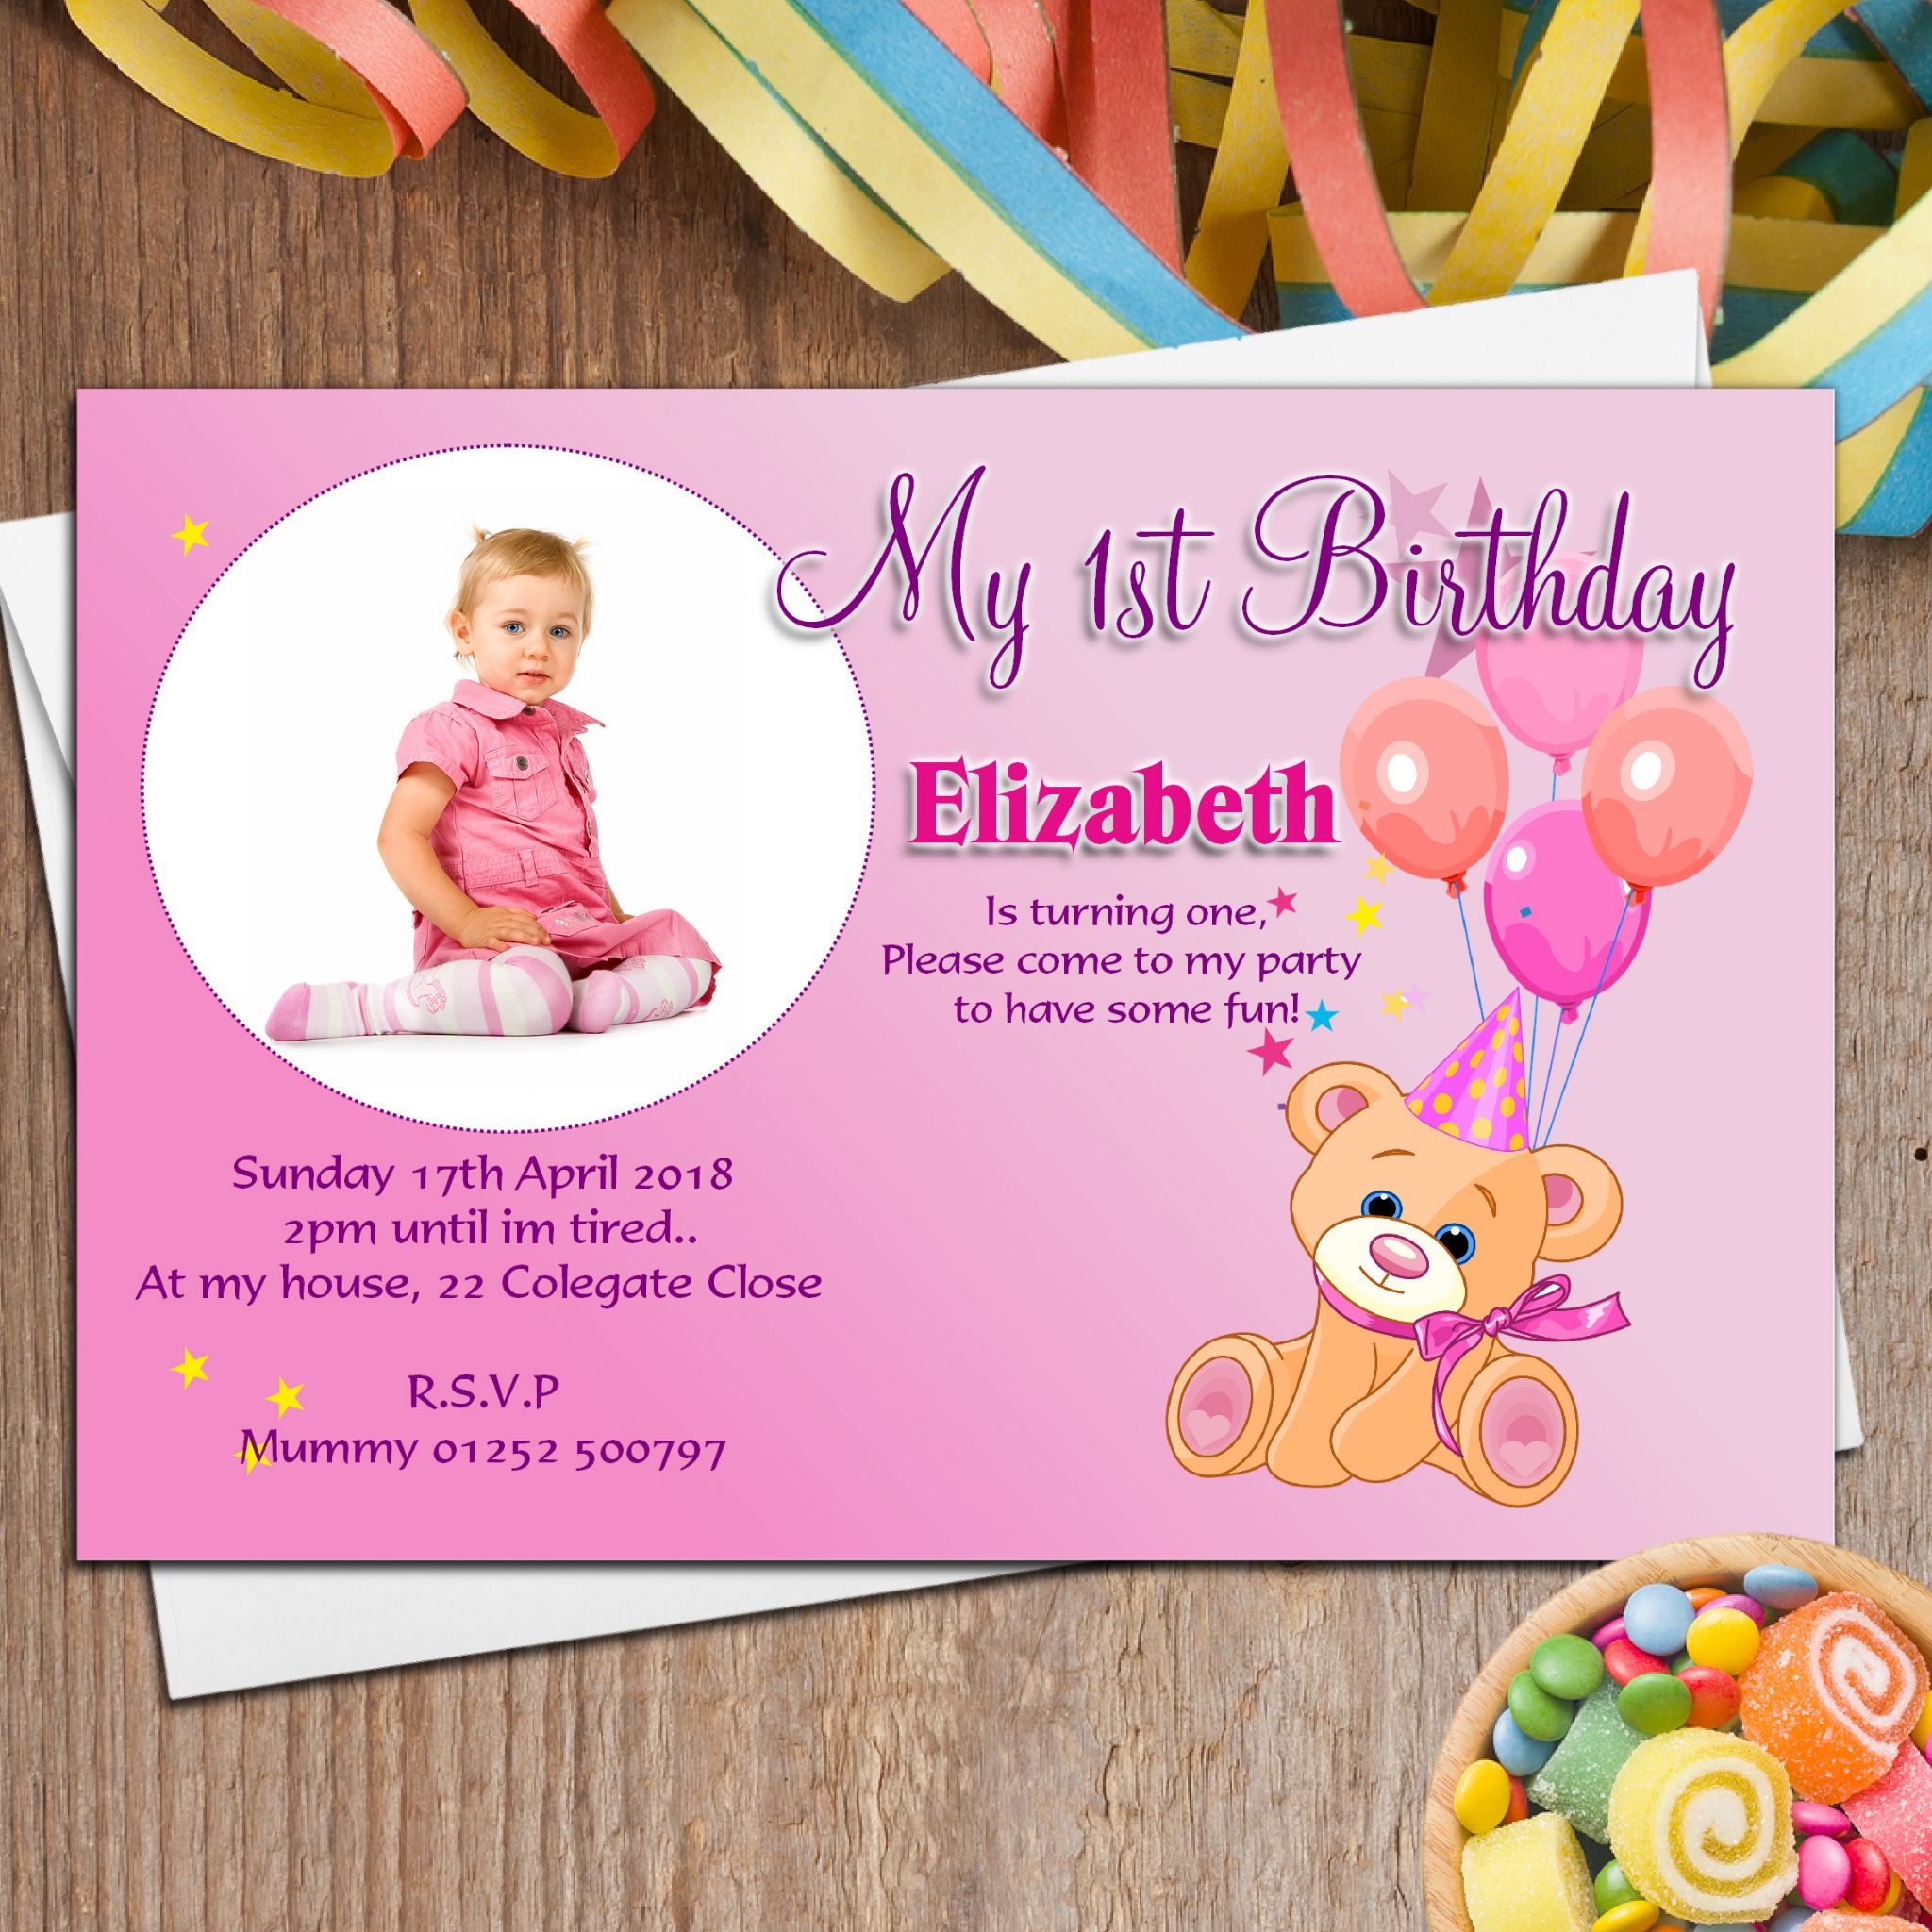 birthday invitation card with photo ; 10-personalised-teddy-birthday-party-photo-invitations-n34-1085-p